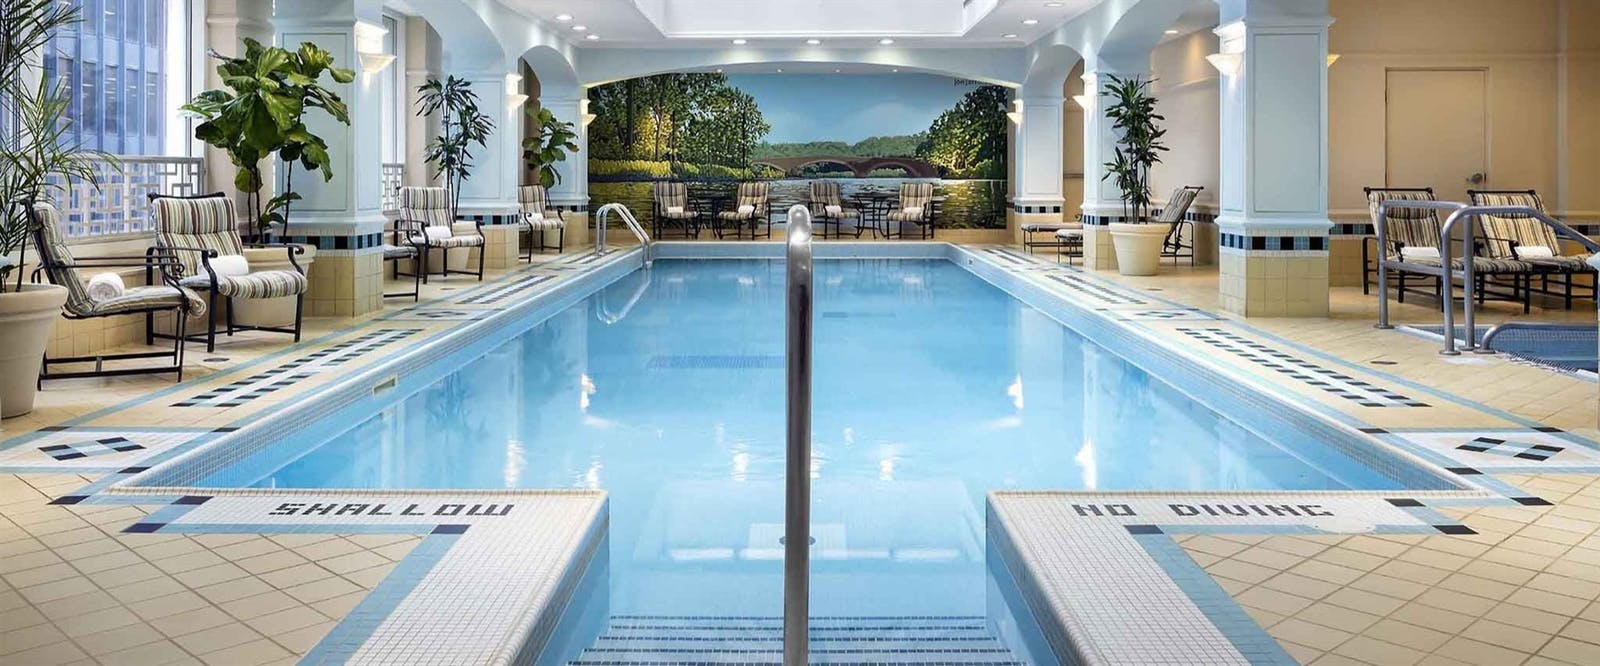 Indoor Swimming Pool at Fairmont Royal York, Toronto